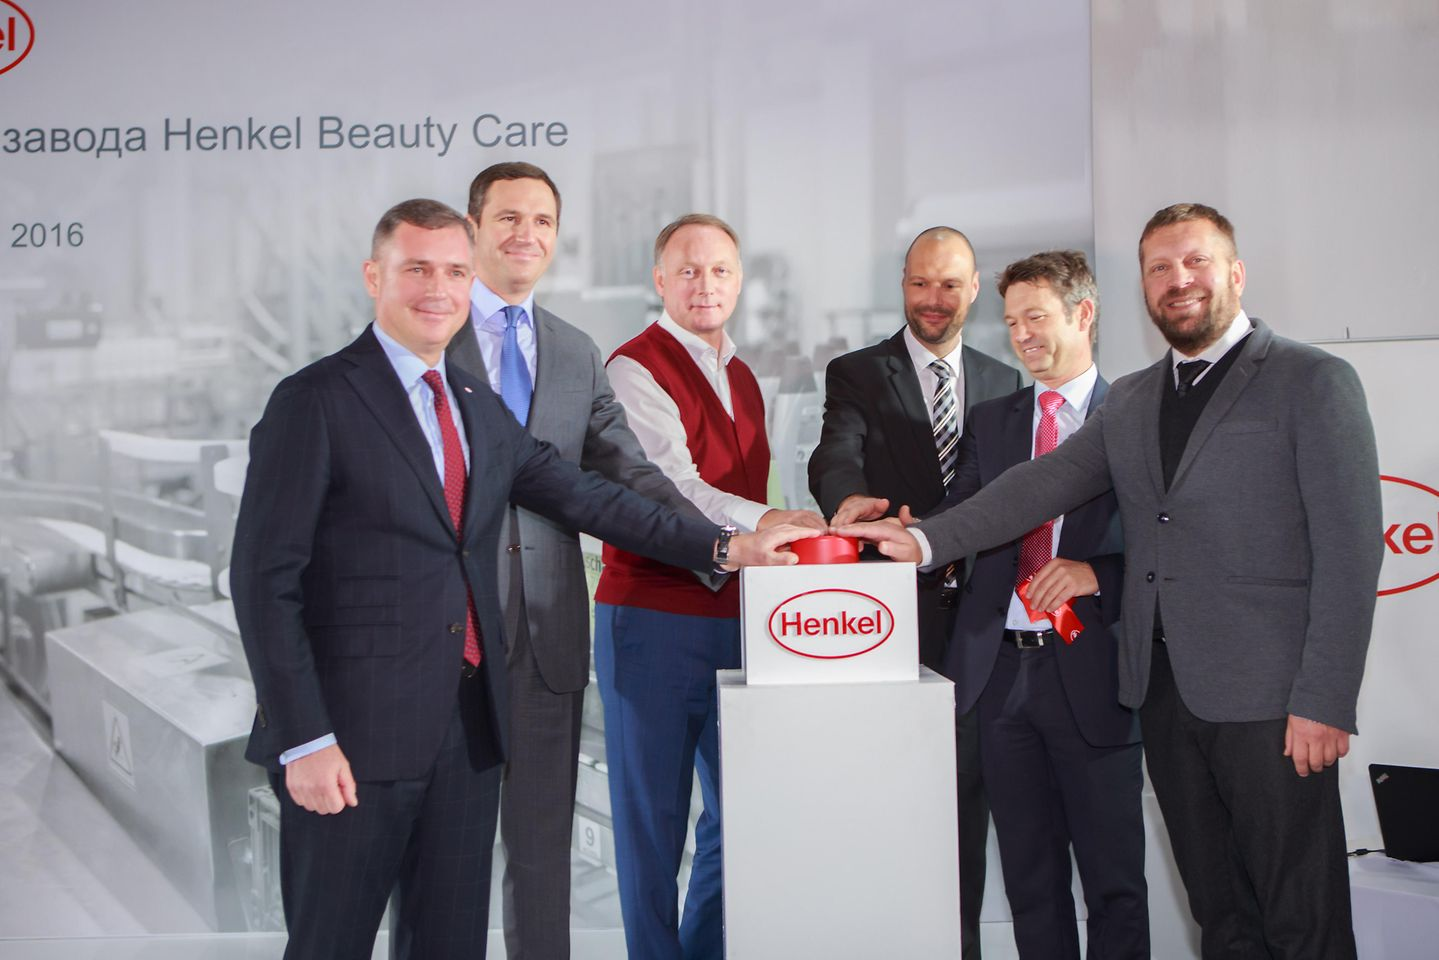 Opening Ceromony of Beauty Care plant in Noginsk, Russia